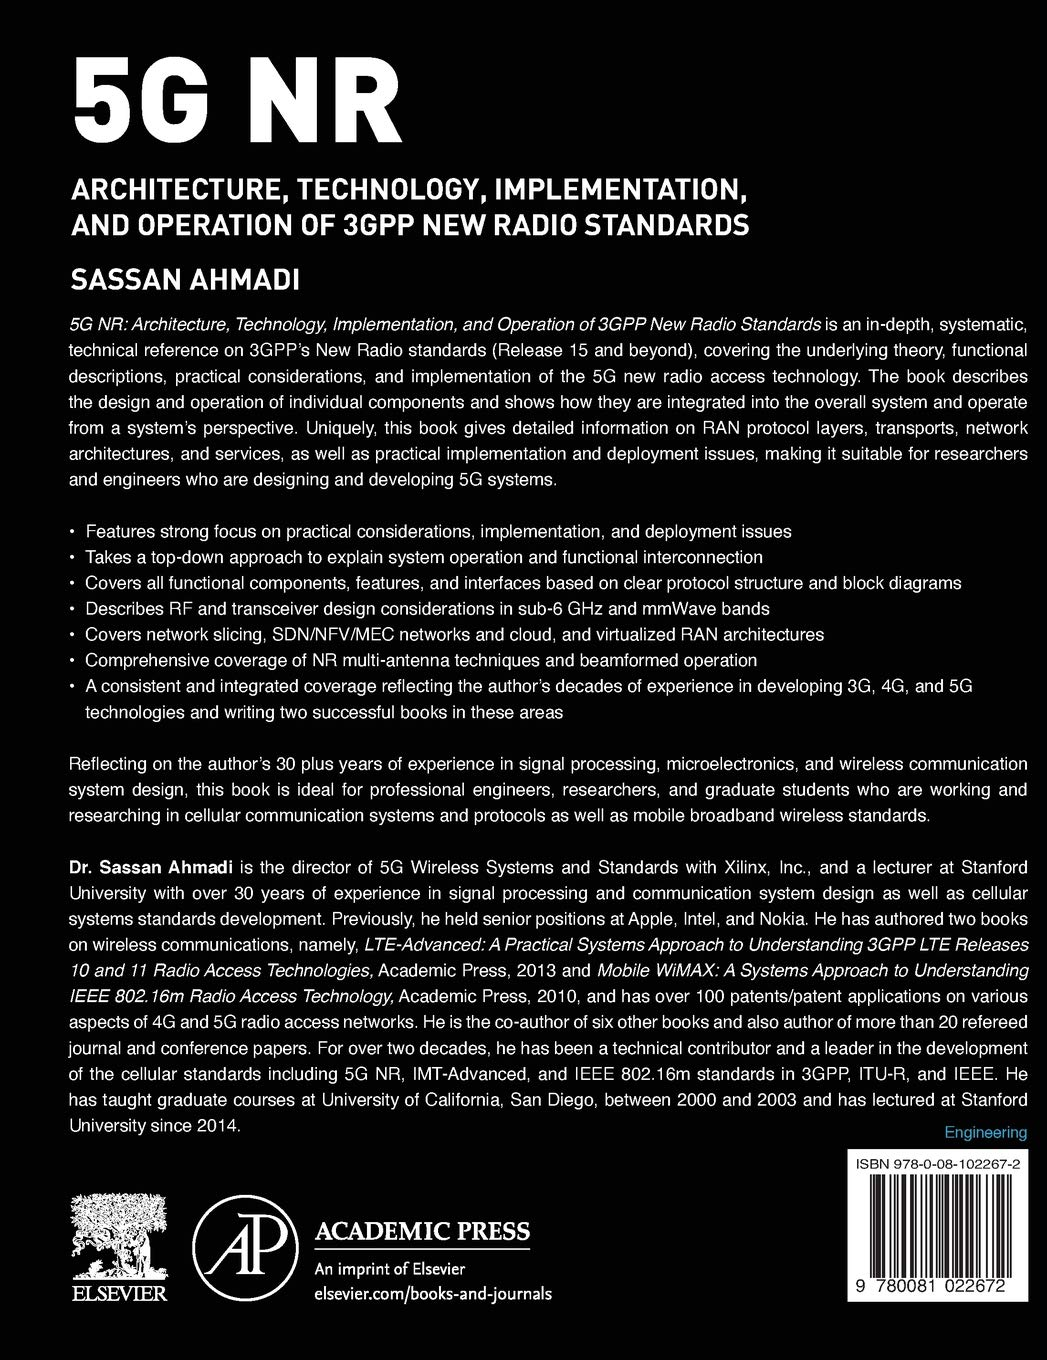 Buy 5G NR: Architecture, Technology, Implementation, and